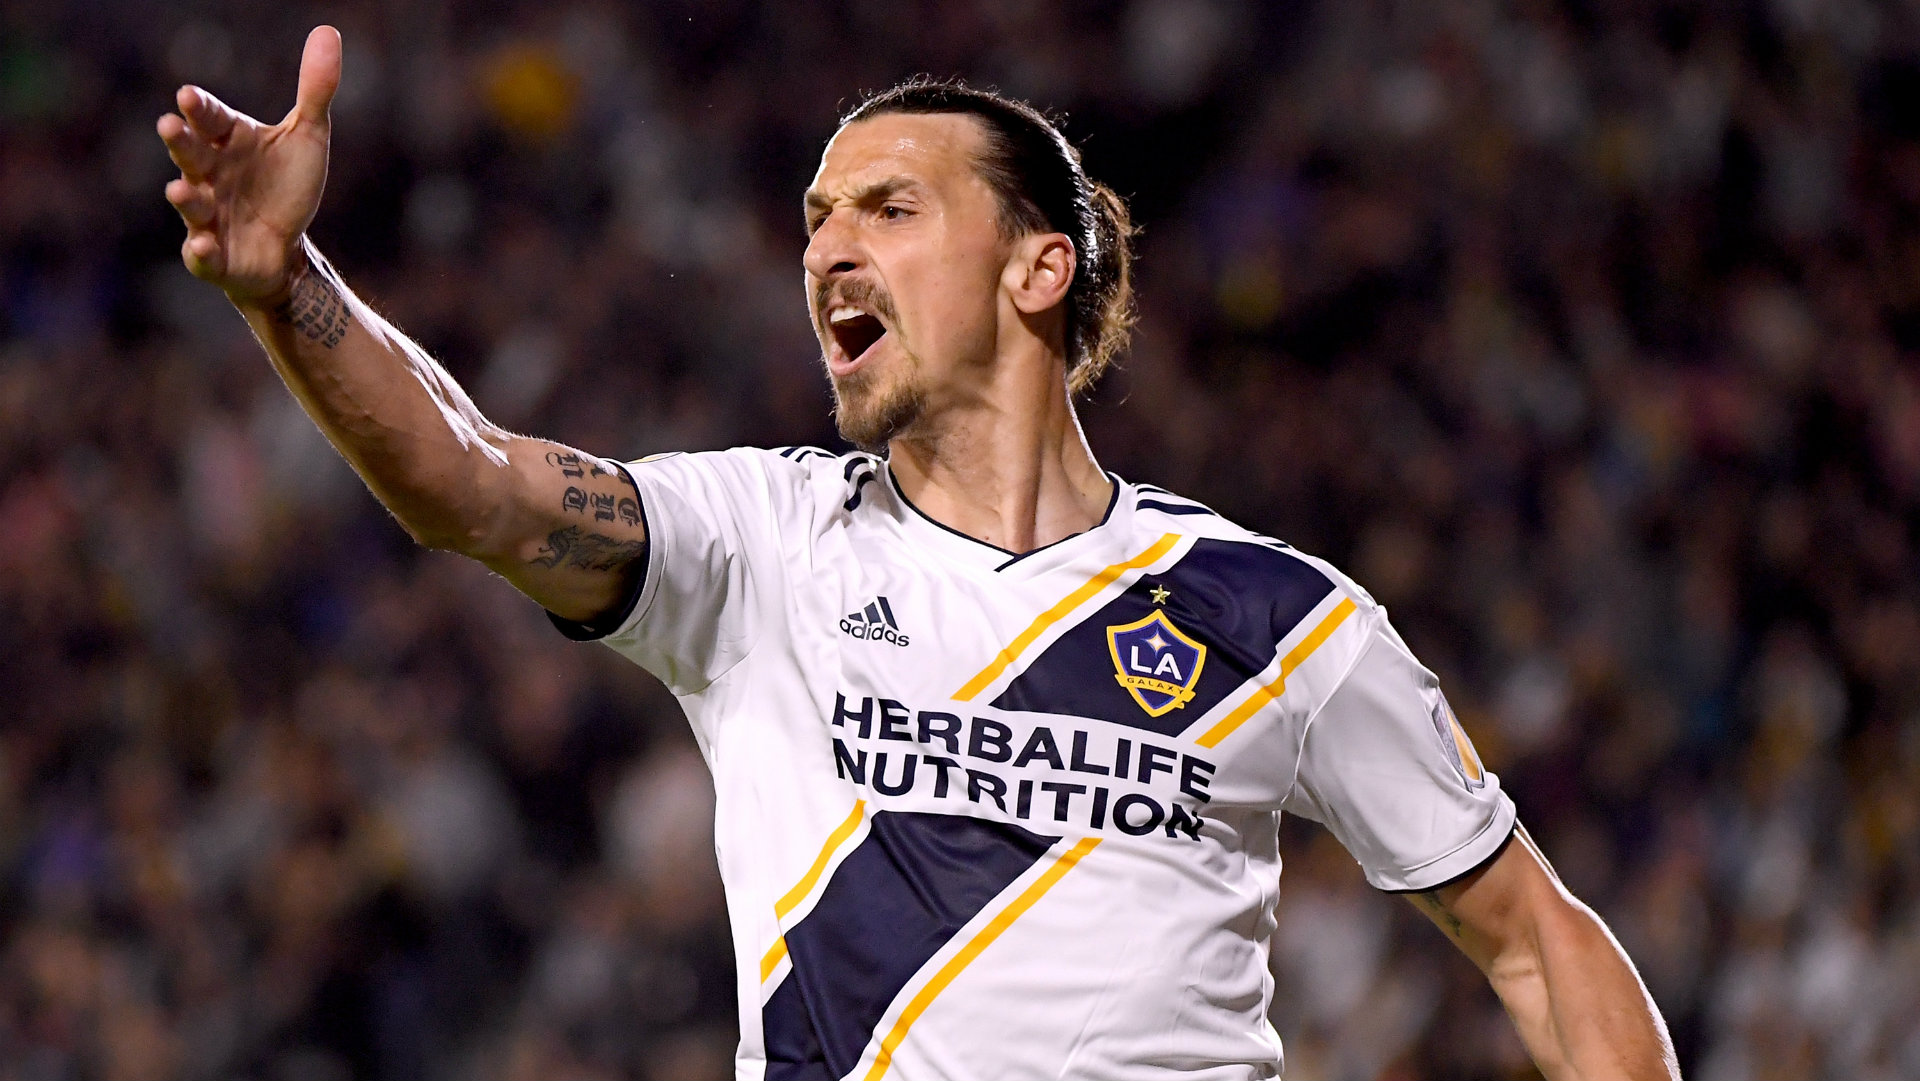 'Zlatan was insulting his team-mates for literally 90 minutes' – Jungwirth recalls 'hilarious' match-up against Ibrahimovic's LA Galaxy